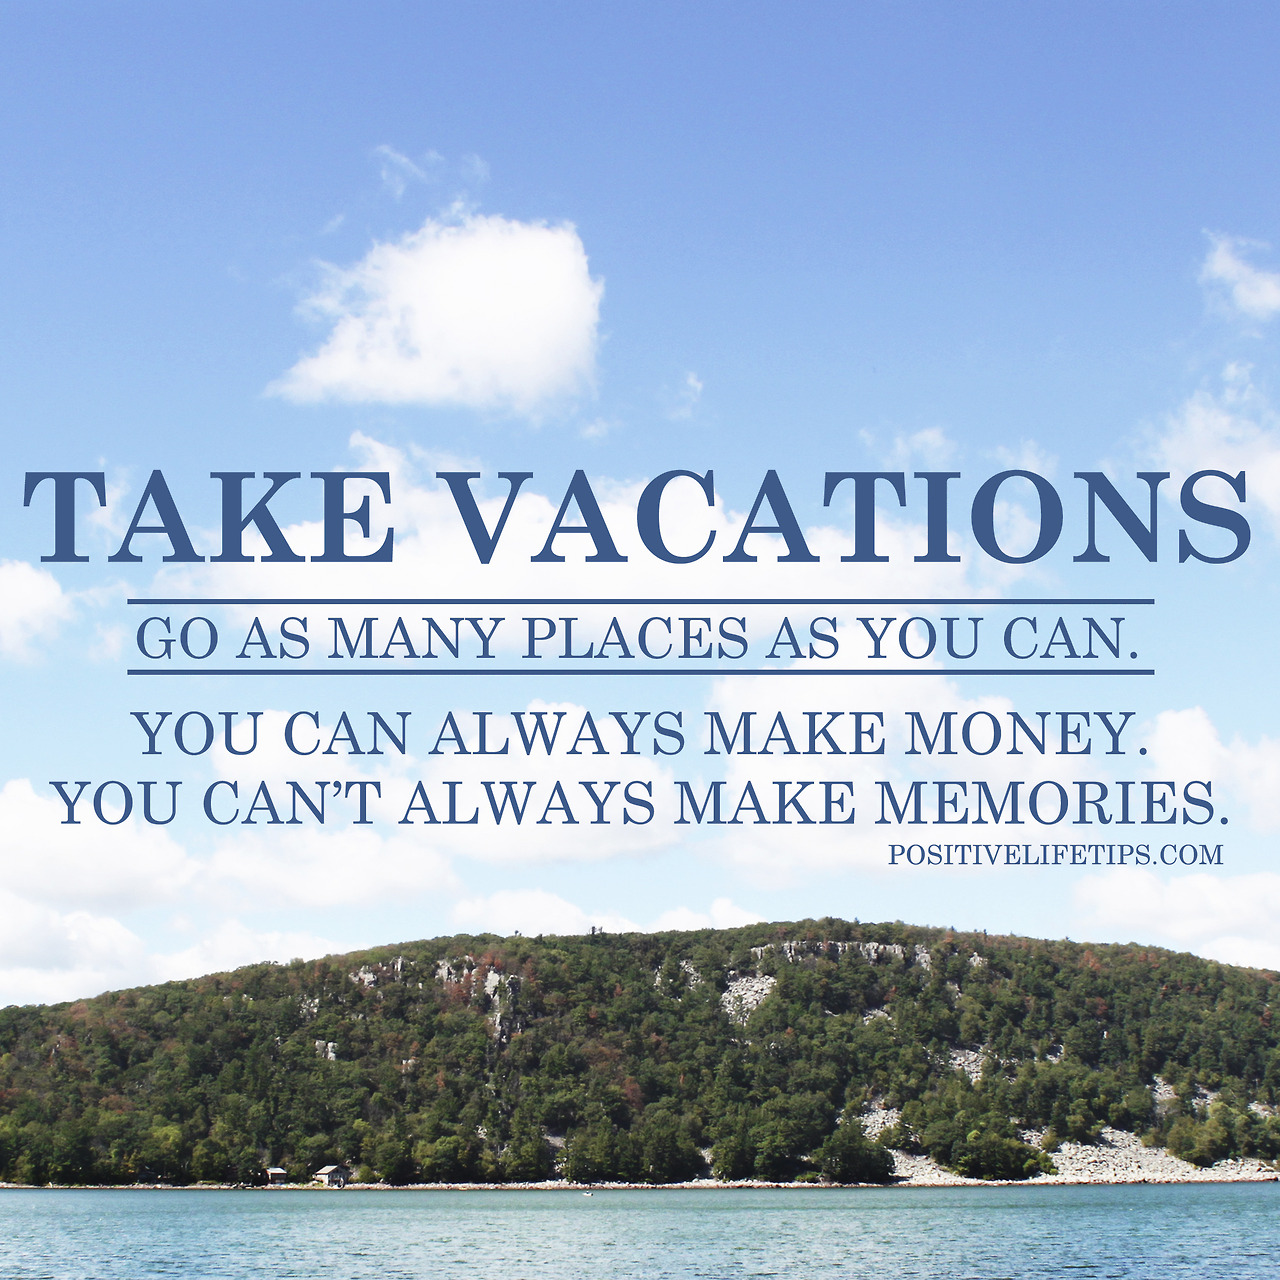 Vacation Quotes Positive Vibe Mondays 7312017  Science Says You Need A Vacation